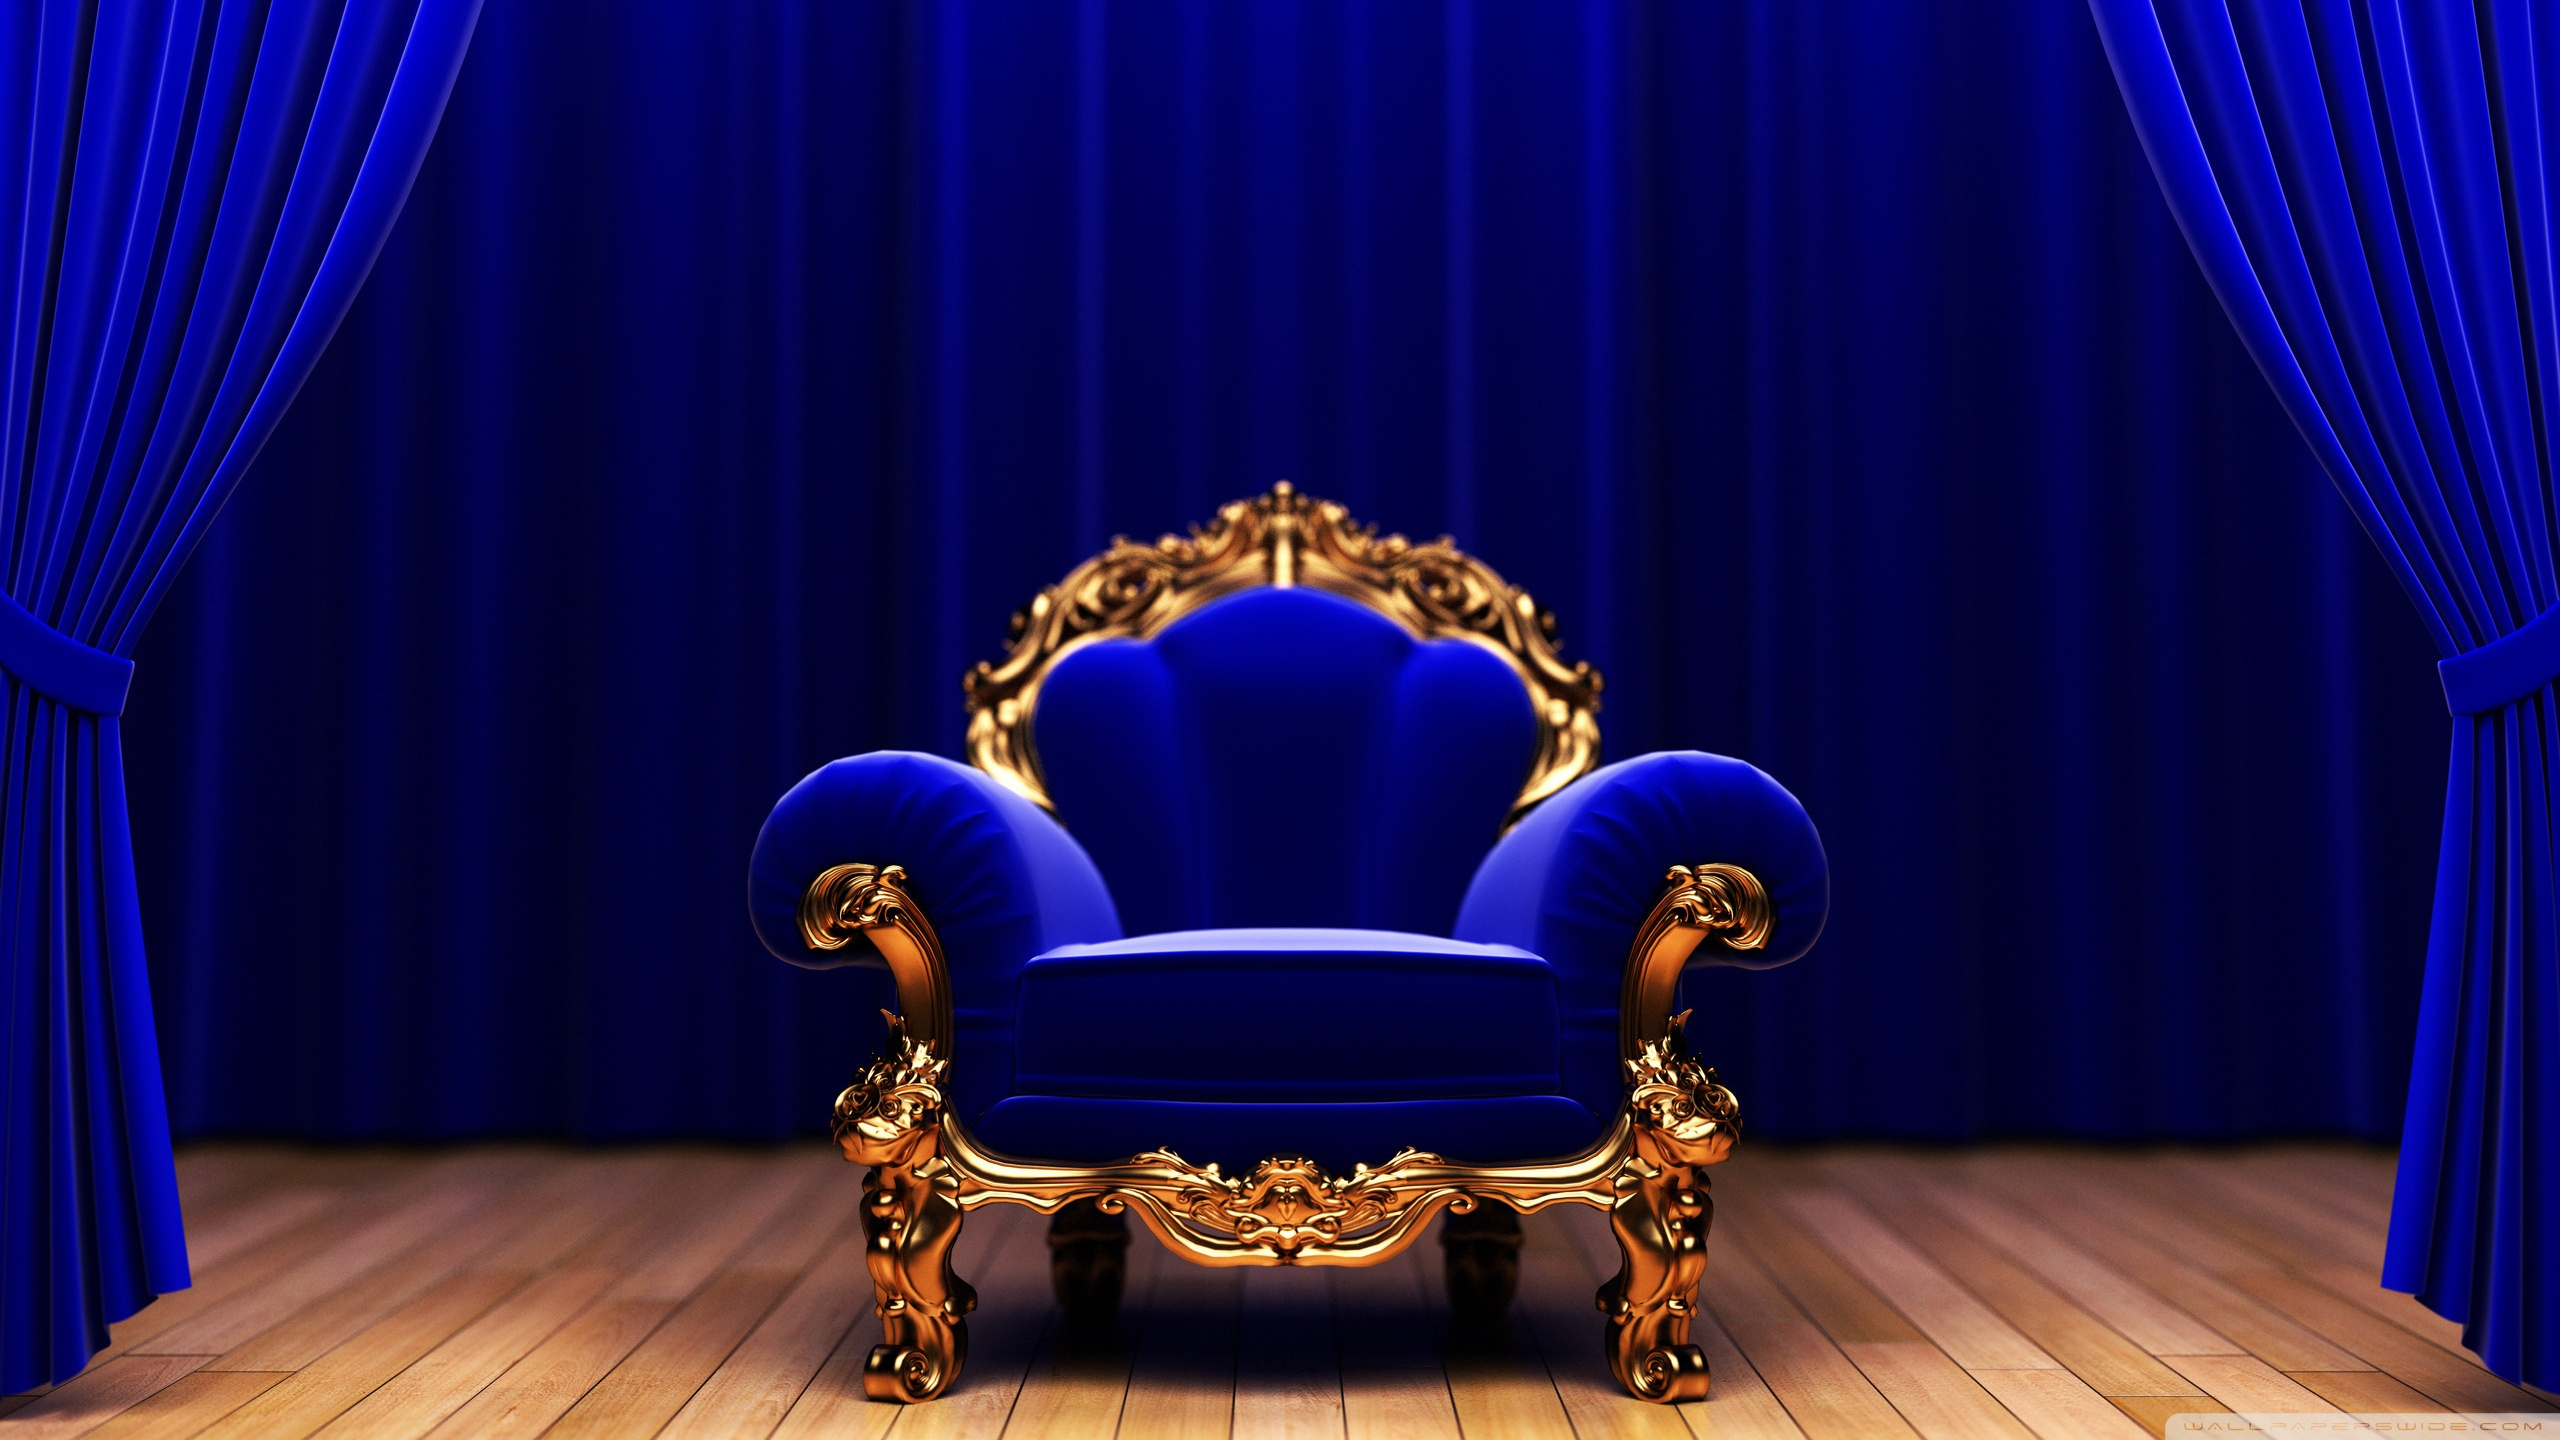 King chair with king - Filename King_armchair Wallpaper 2560x1440 Jpg View Image Found On King Chair Wallpaper